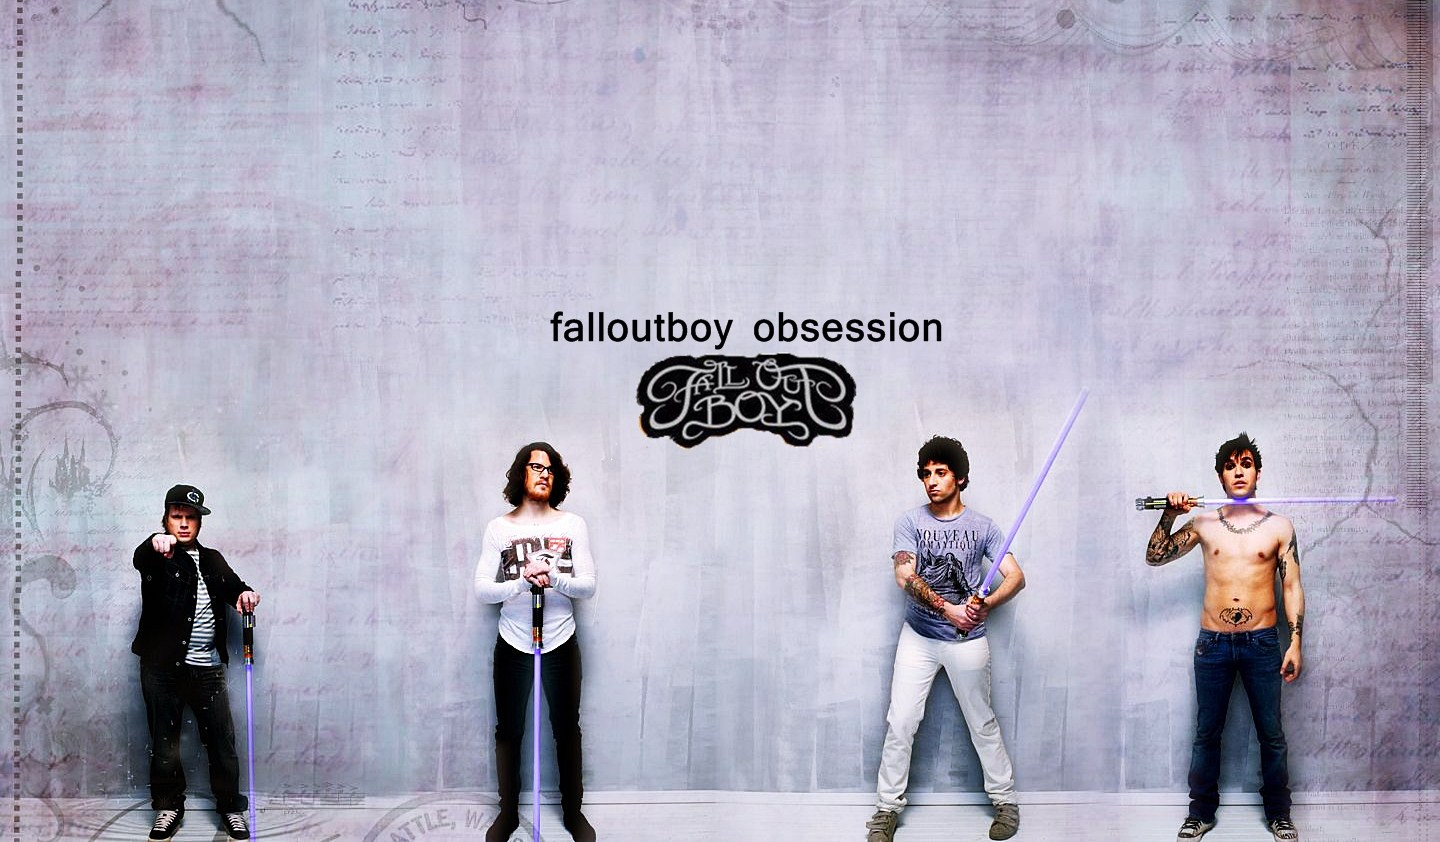 Fall Out Boy Wallpaper Logo Fall Out Boy Wallpapers Fob Obsession Fall Out Boy